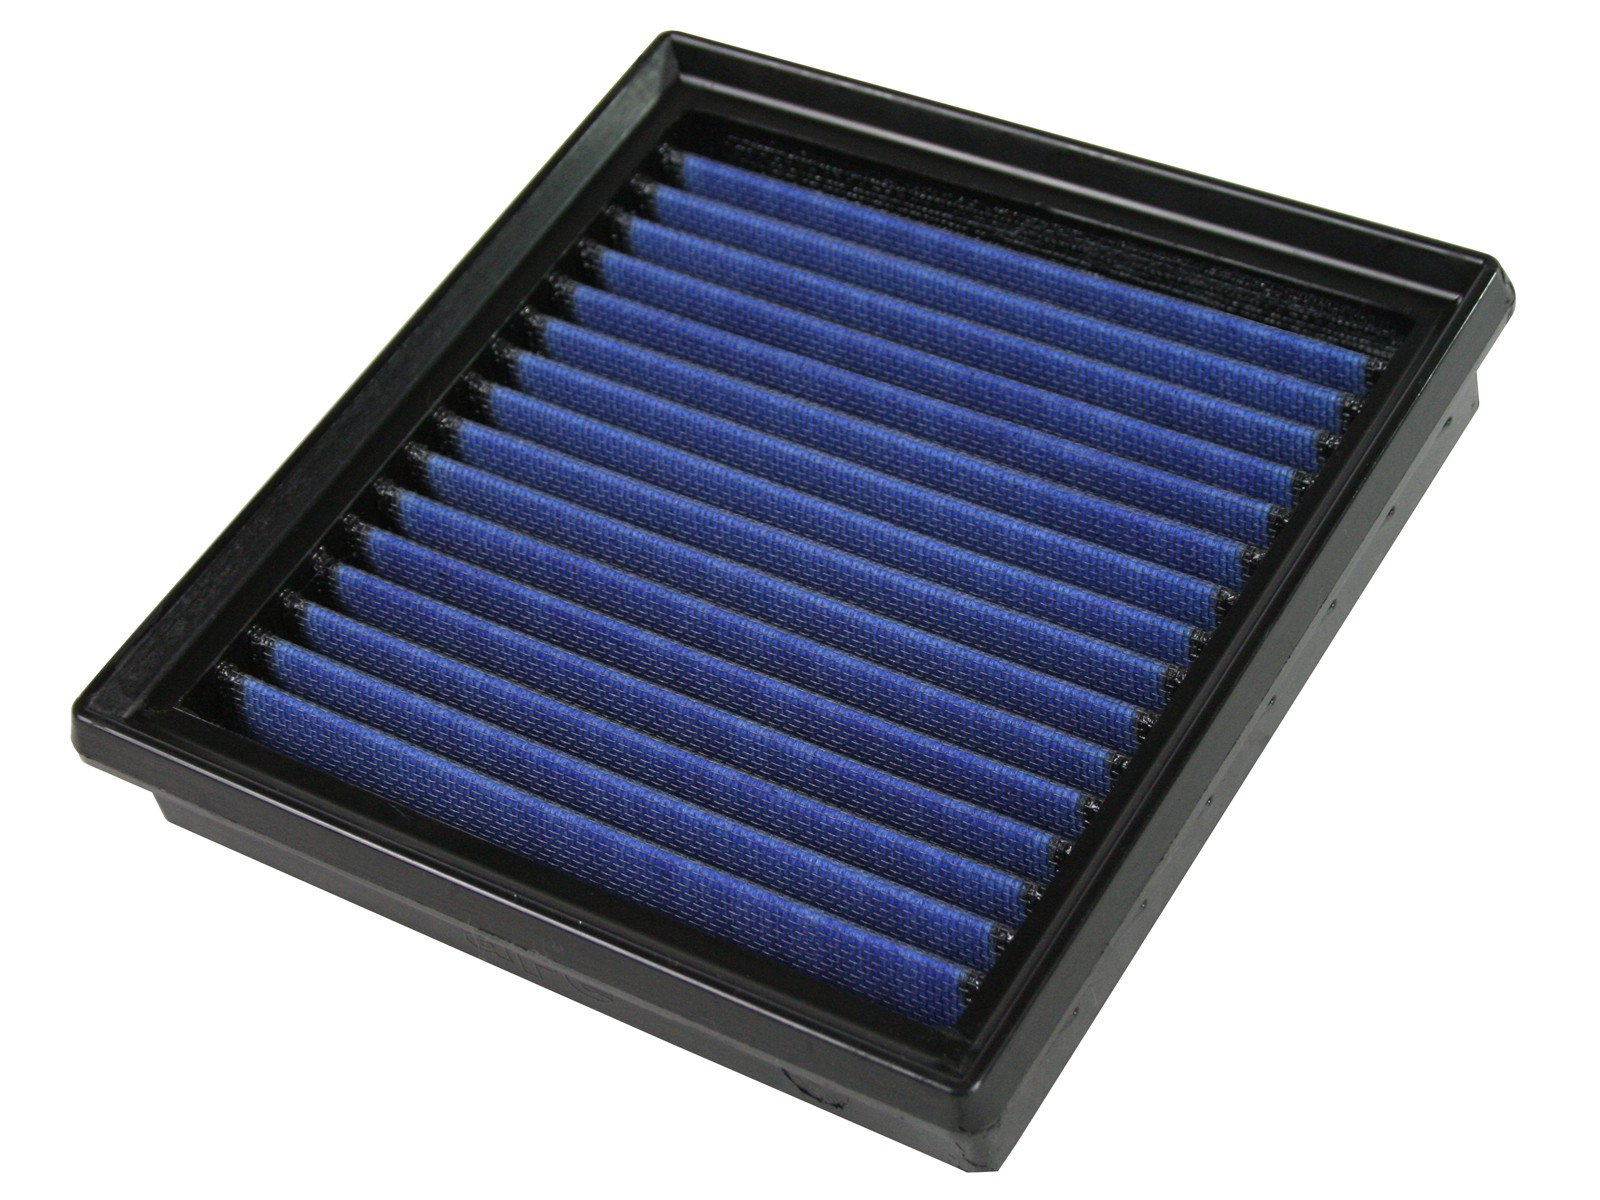 aFe POWER 30-10032 Magnum FLOW Pro 5R Air Filter